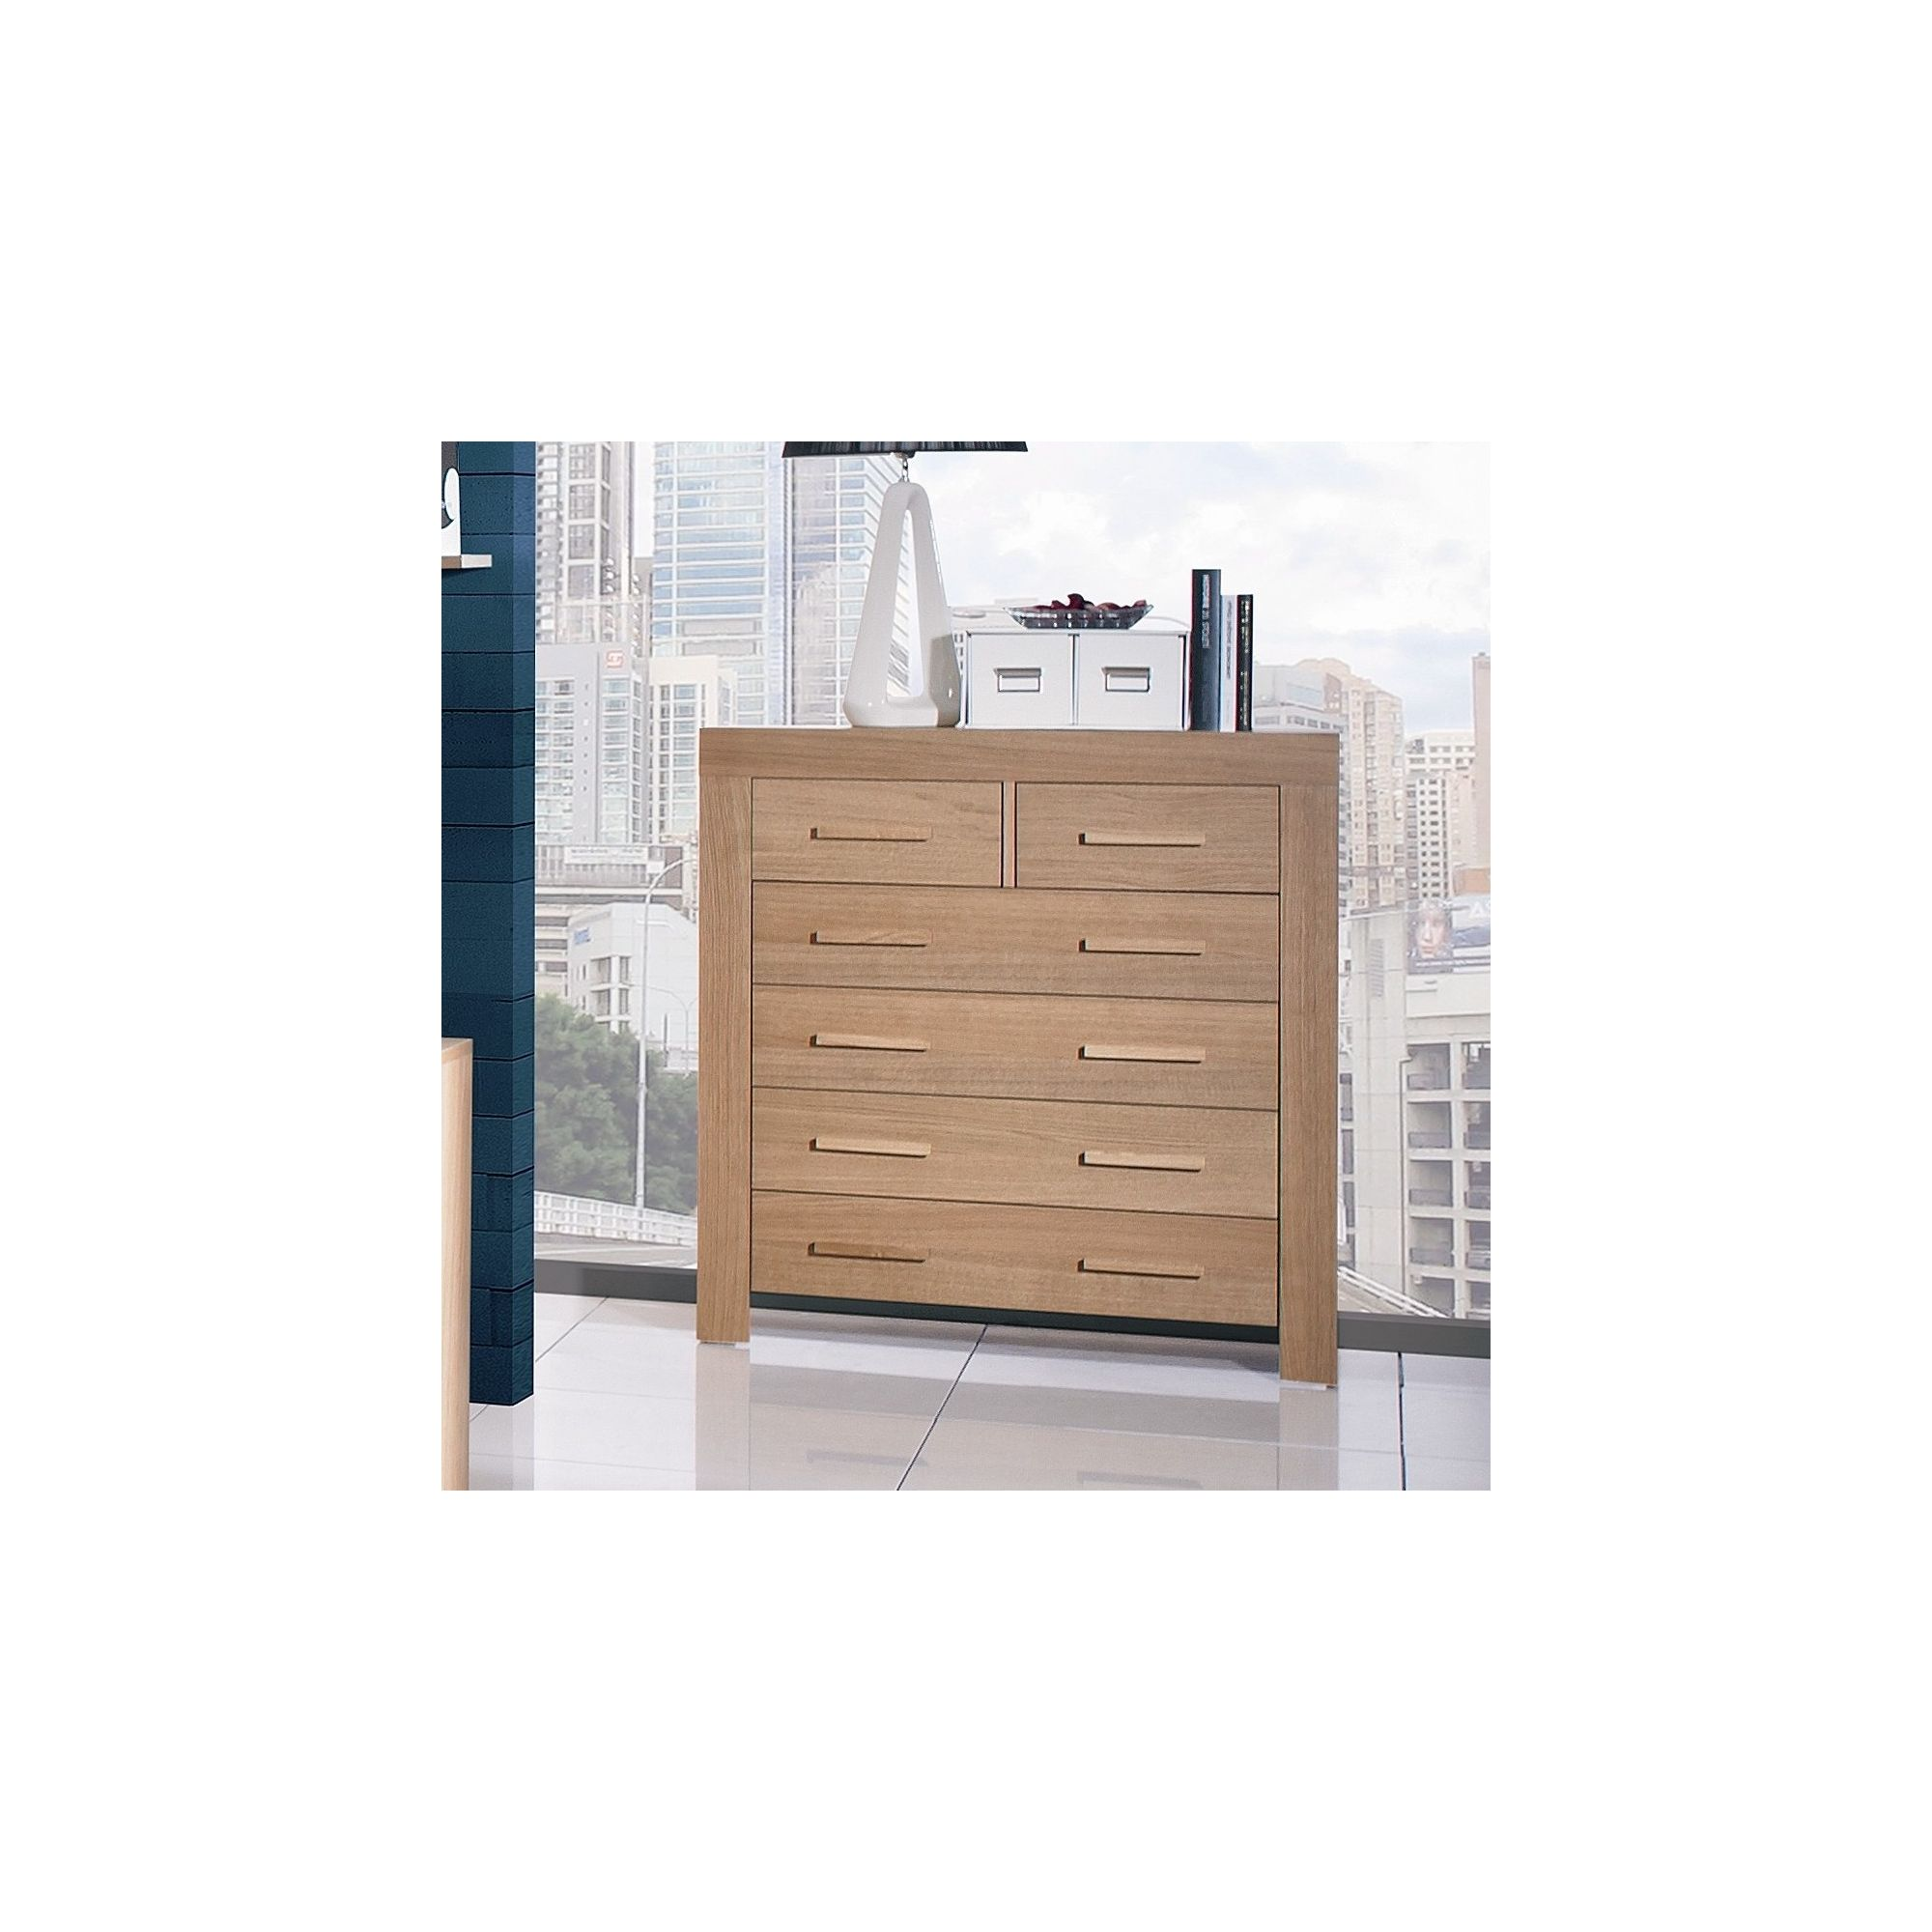 Urbane Designs Jive 4 + 2 Drawer Chest in Oak at Tesco Direct